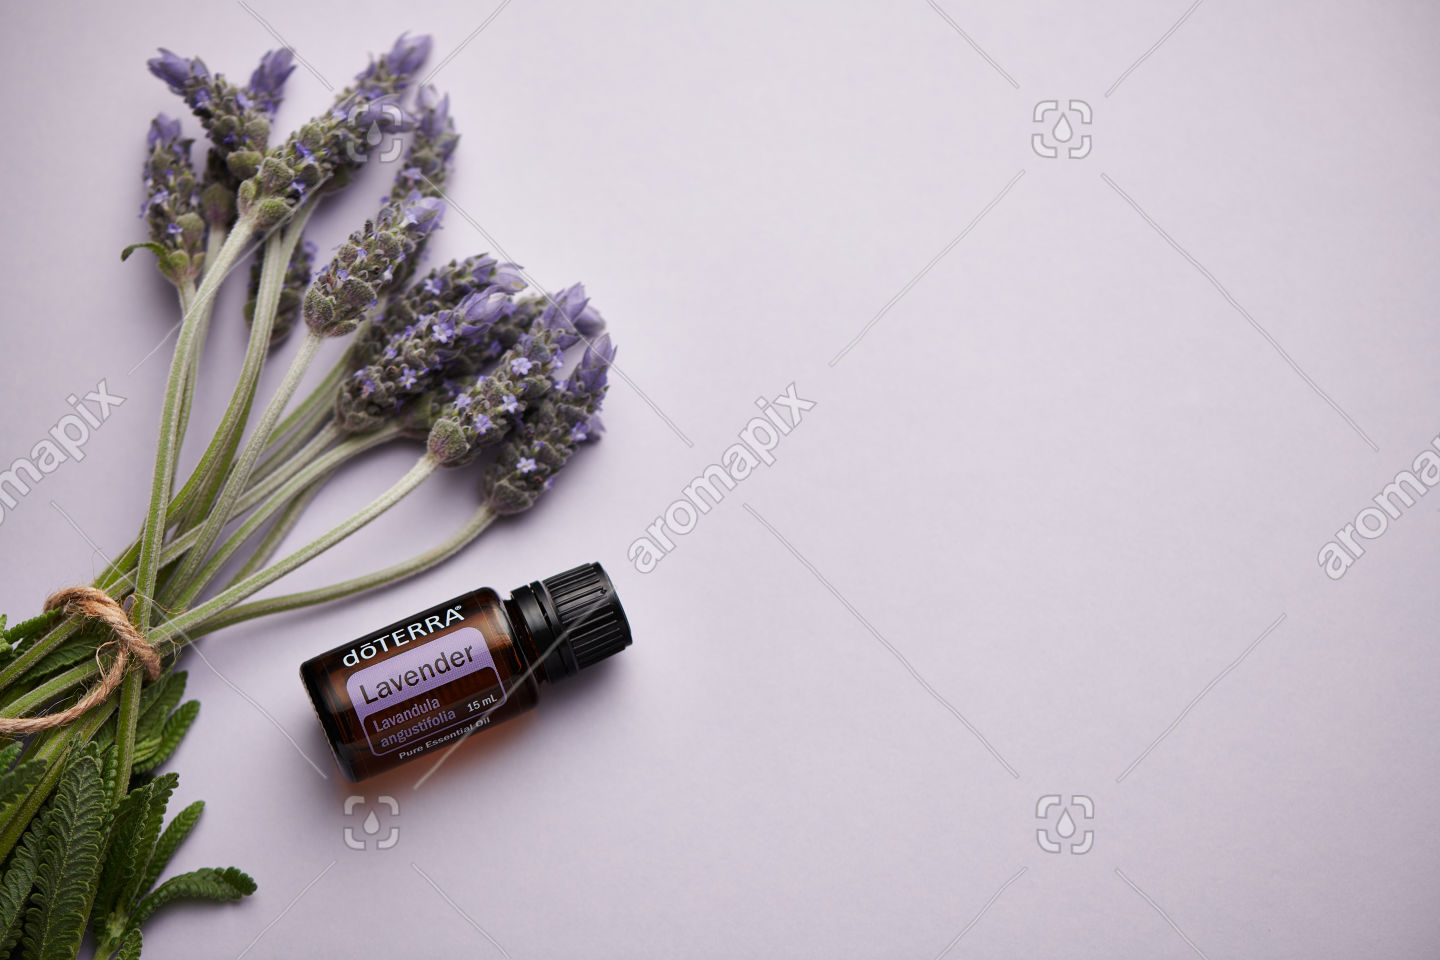 doTERRA Lavender and lavender flowers on light purple card stock